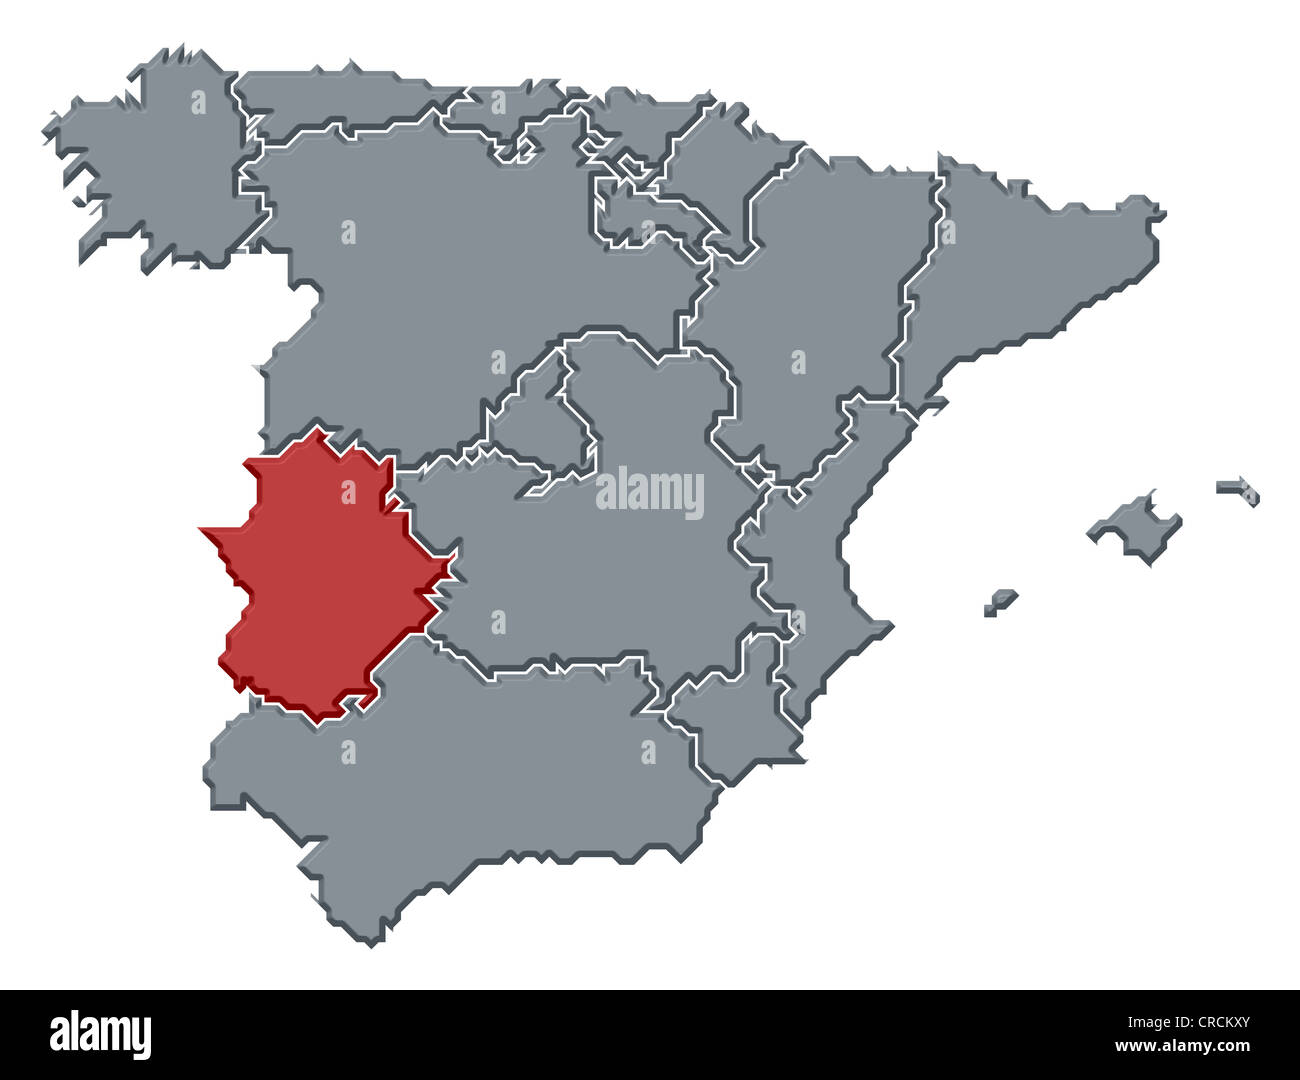 Map Of Spain Extremadura.Political Map Of Spain With The Several Regions Where Extremadura Is